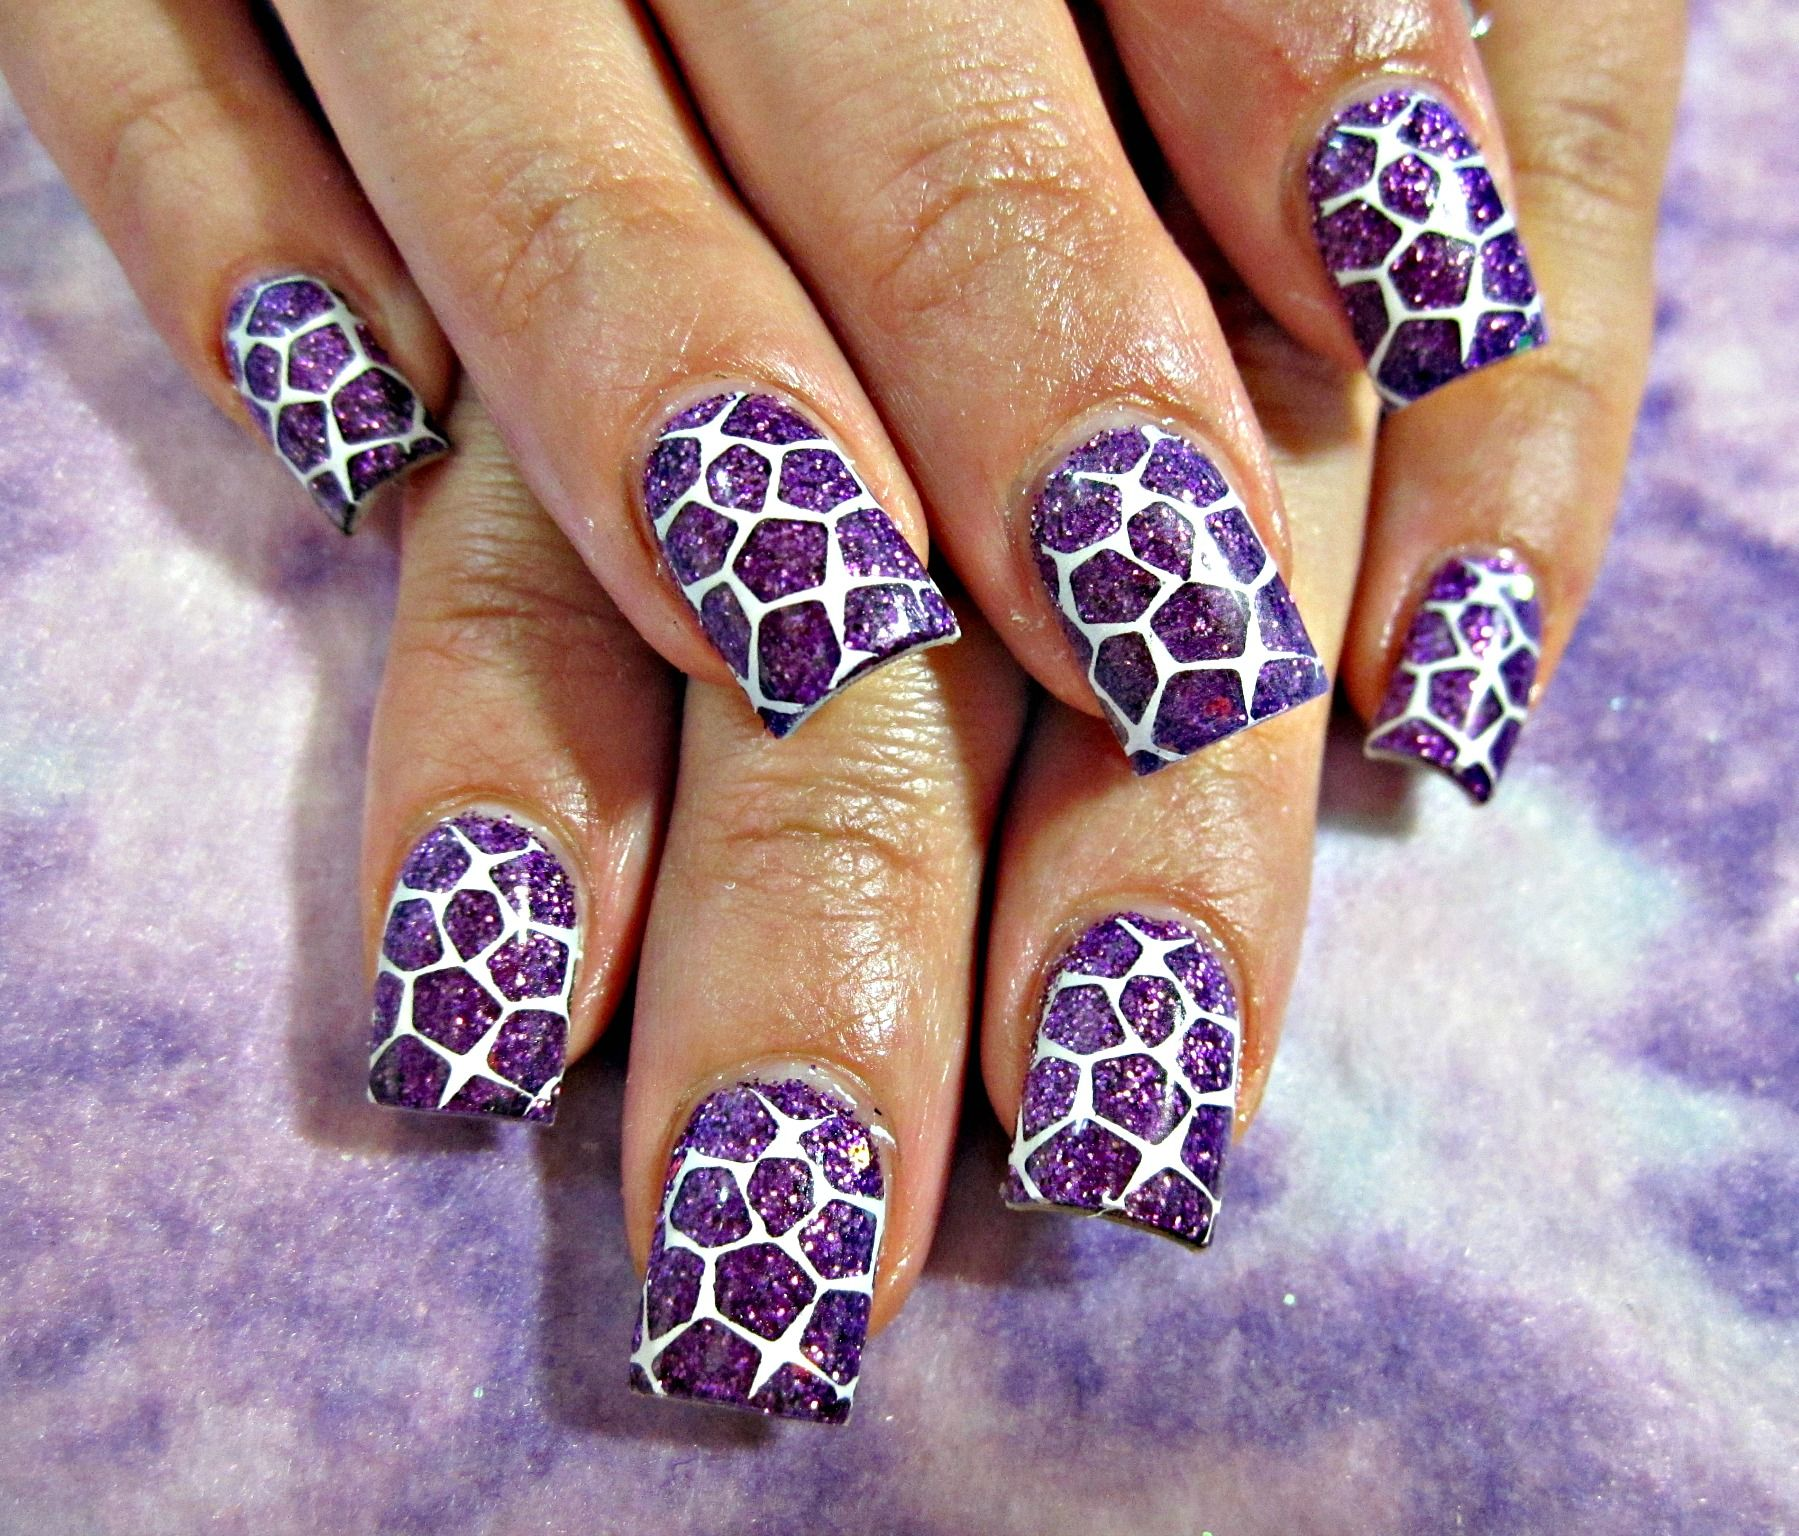 Purple and white acrylic nails | Nails | Pinterest | Nagelkunst ...